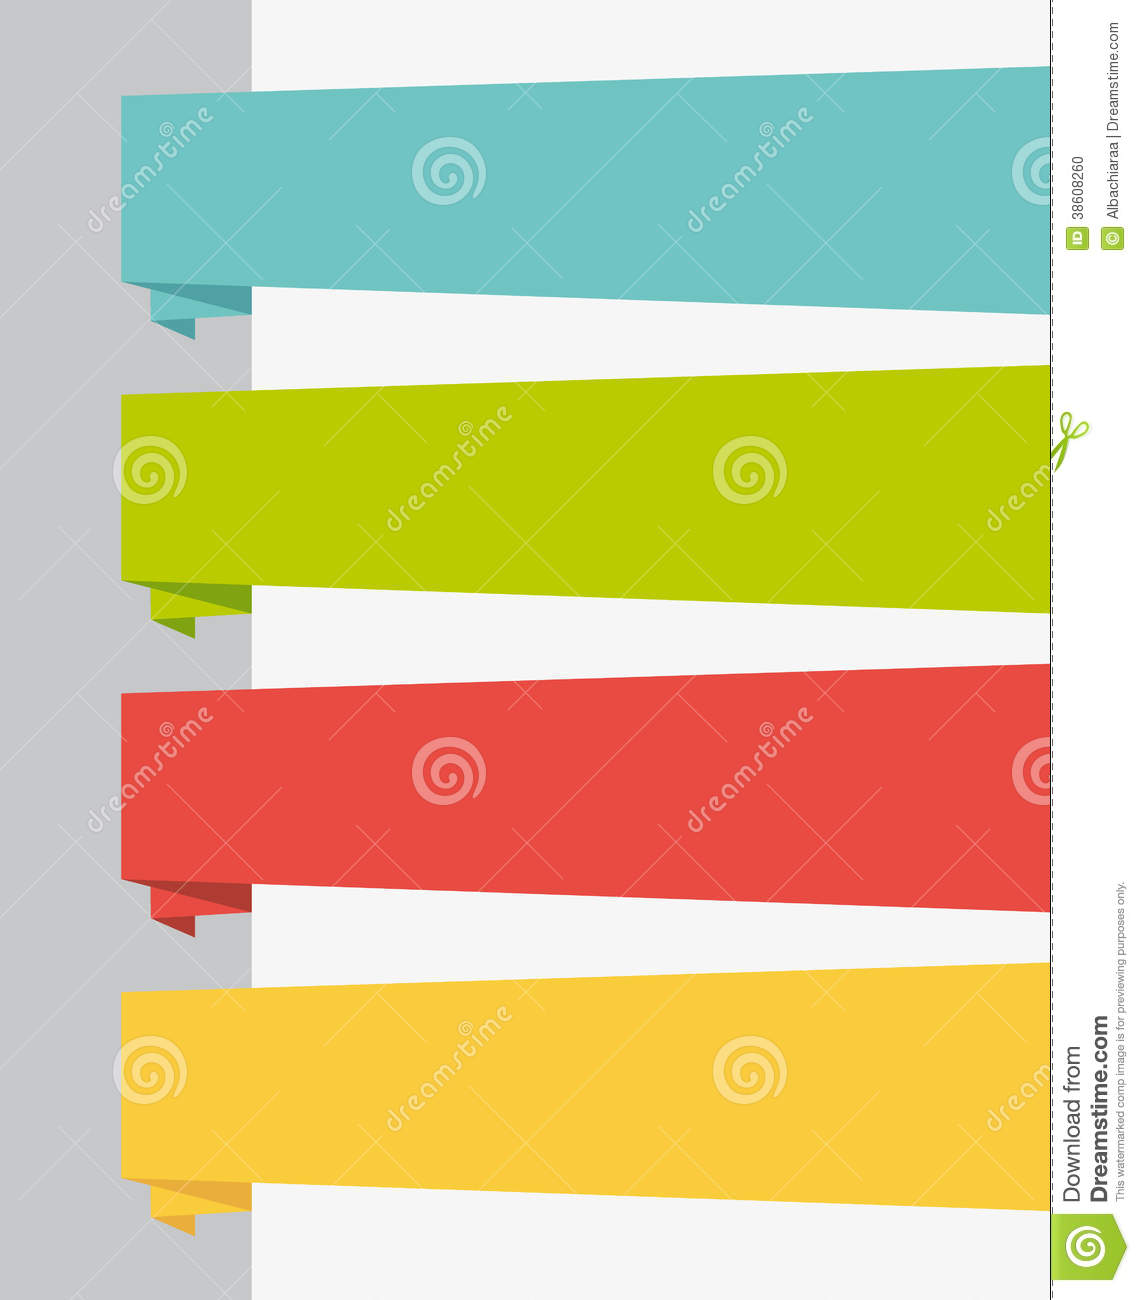 Flat Design UI Title Banners Set. Stock Photo - Image: 38608260